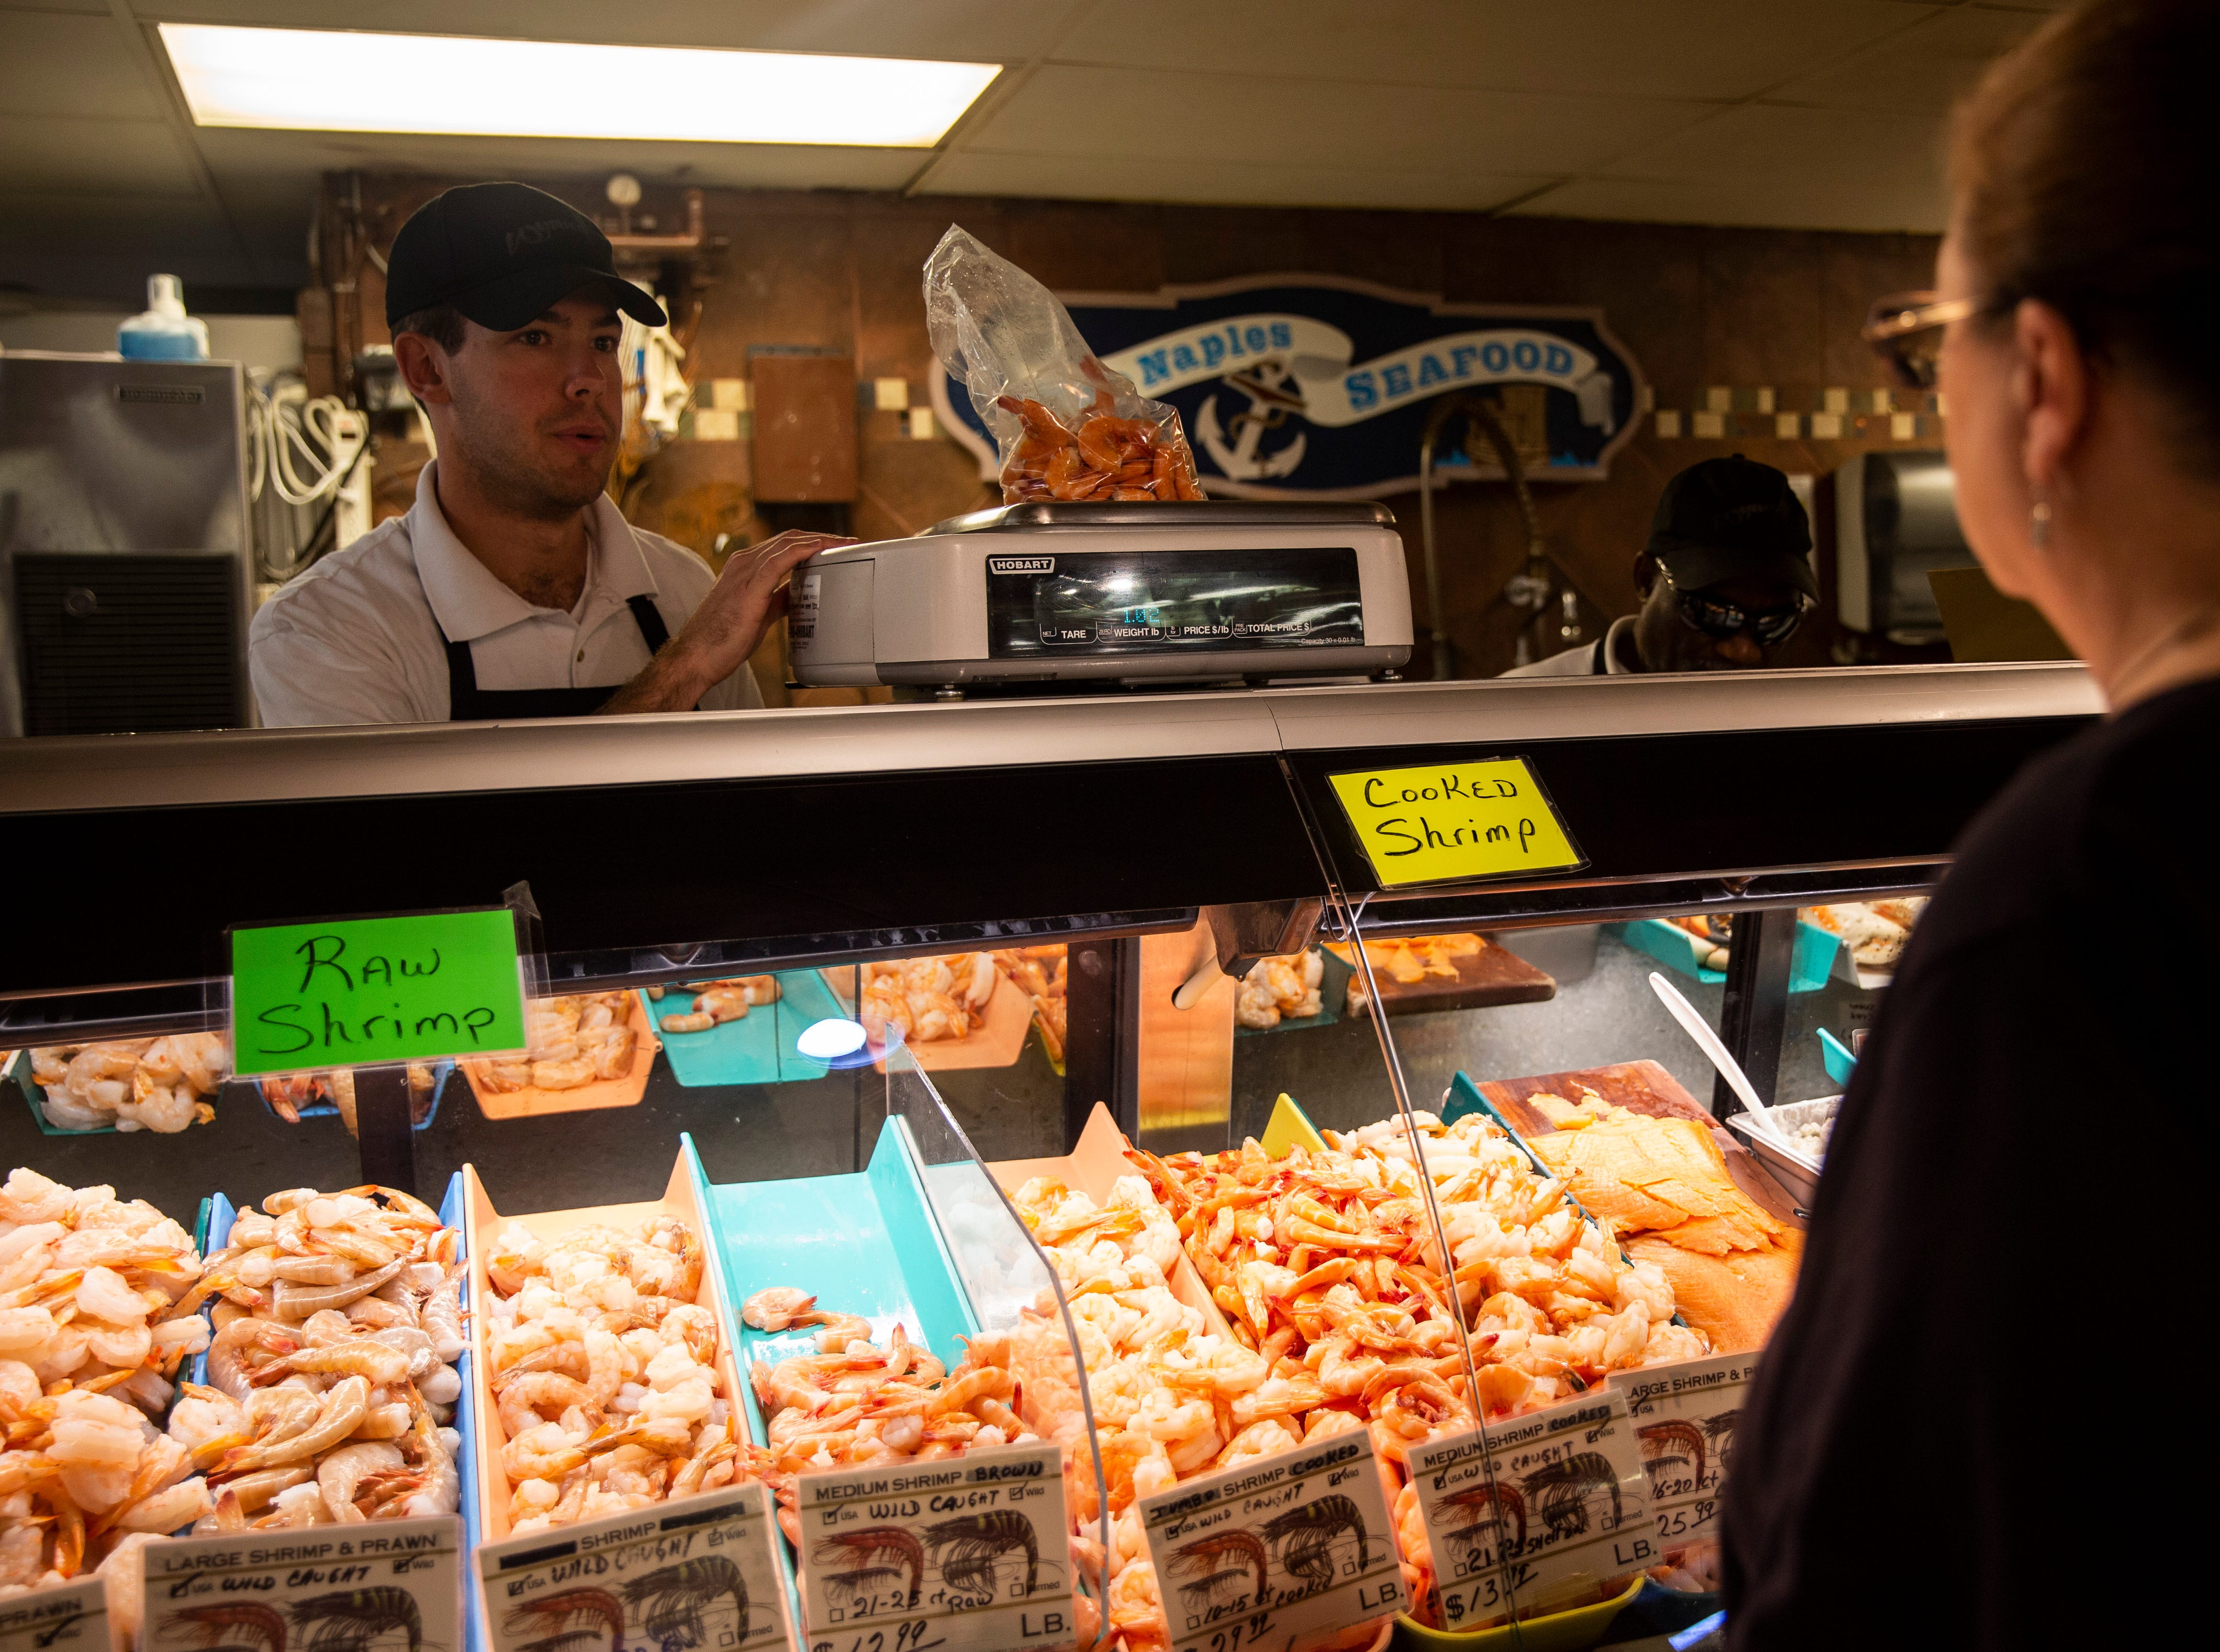 Larry Landberg helps a customer in the seafood department on Friday, Dec. 21, 2018, at Wynn's Market in Naples. Wynn's Market is celebrating 80 years of business this year.